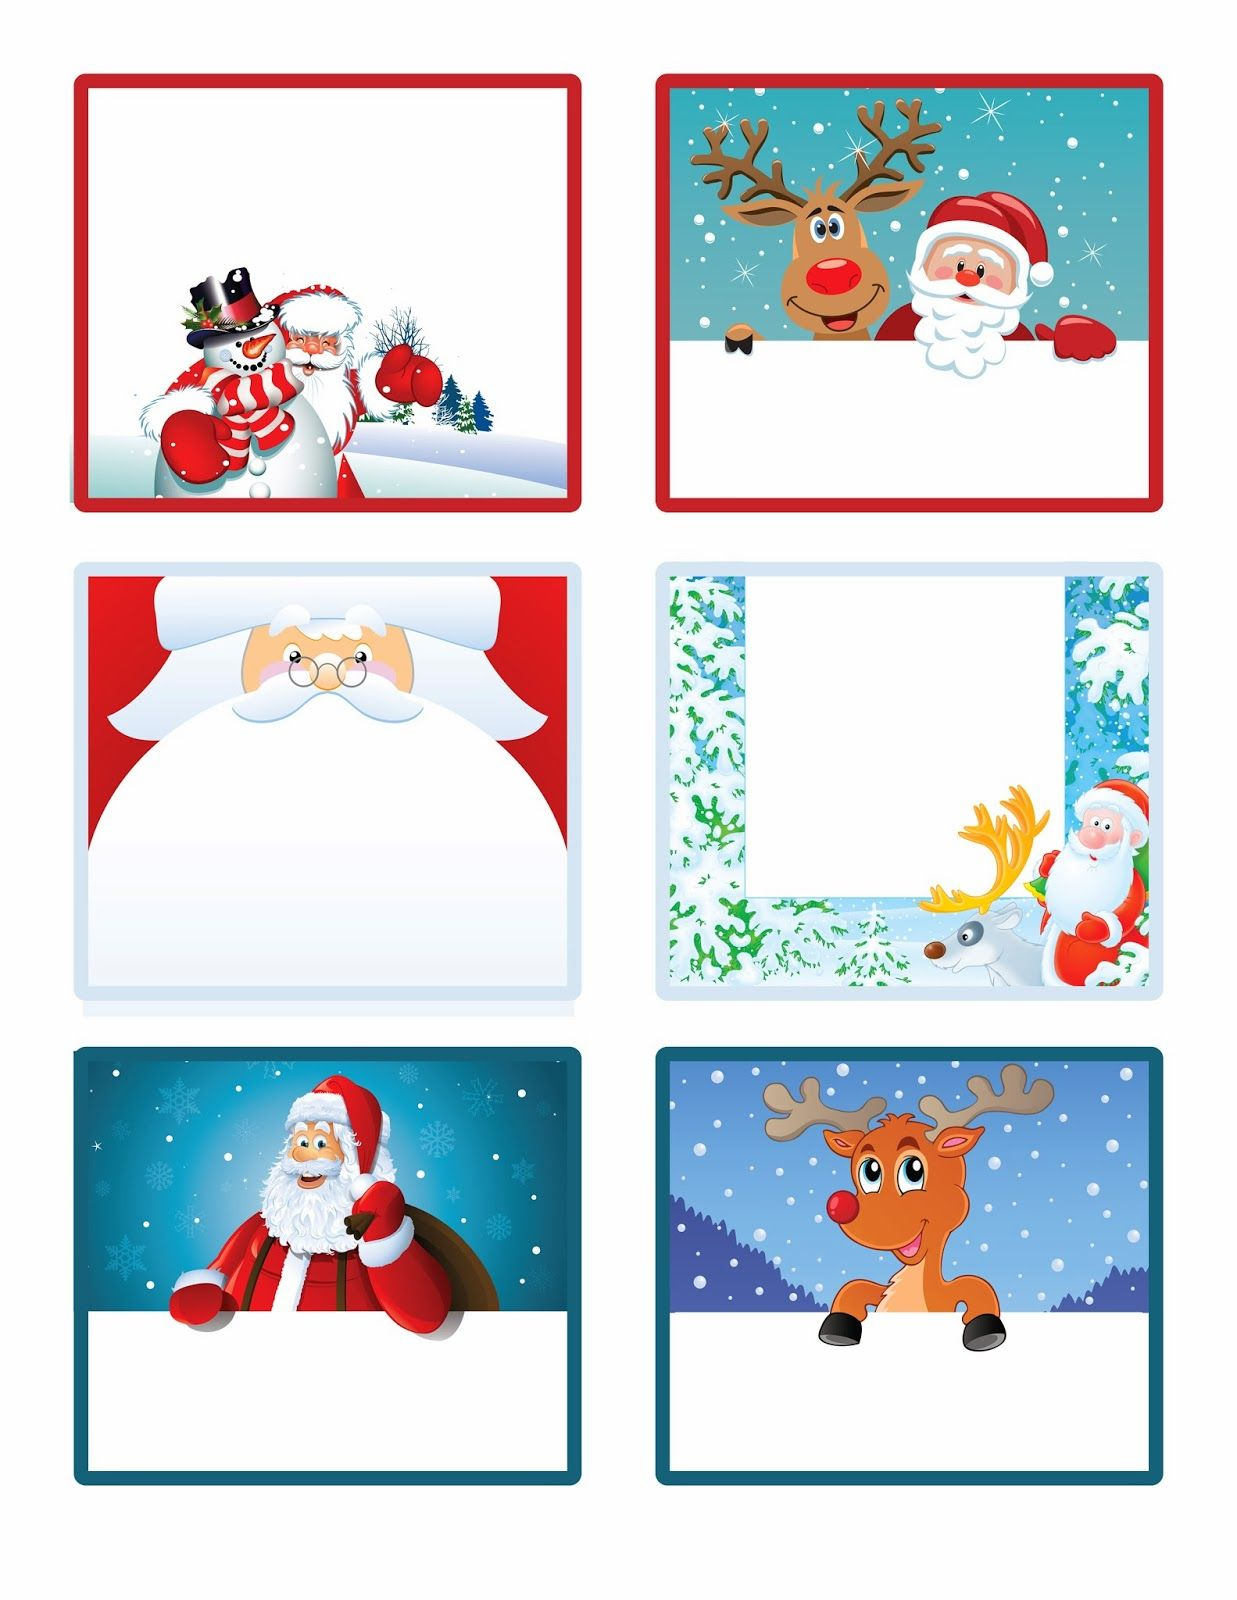 Tiernas etiquetas para navidad para imprimir gratis printable free printable christmas gift tagslabels from letters from santa negle Image collections